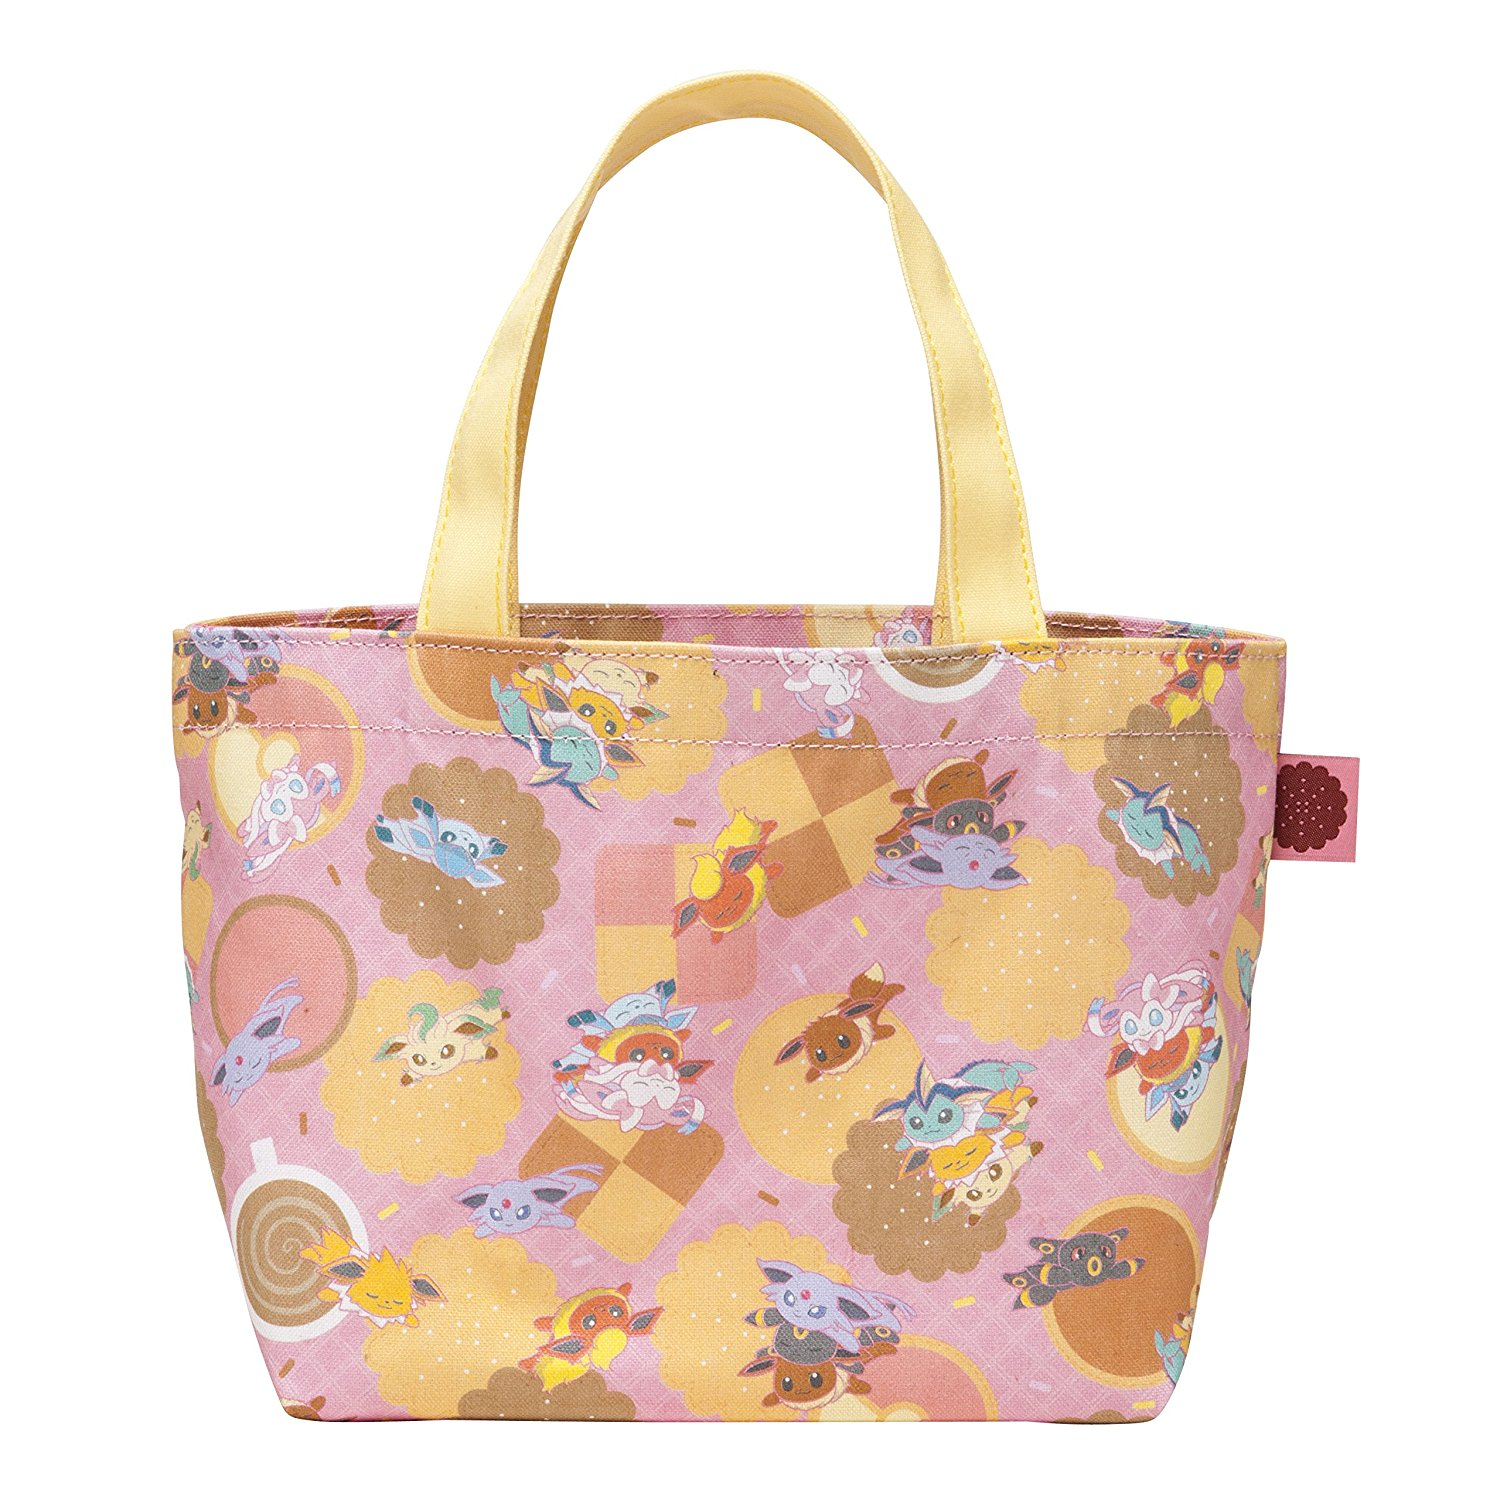 Pokemon Center Borsa Fantasia Sleeping Pokemon Candy Giappone